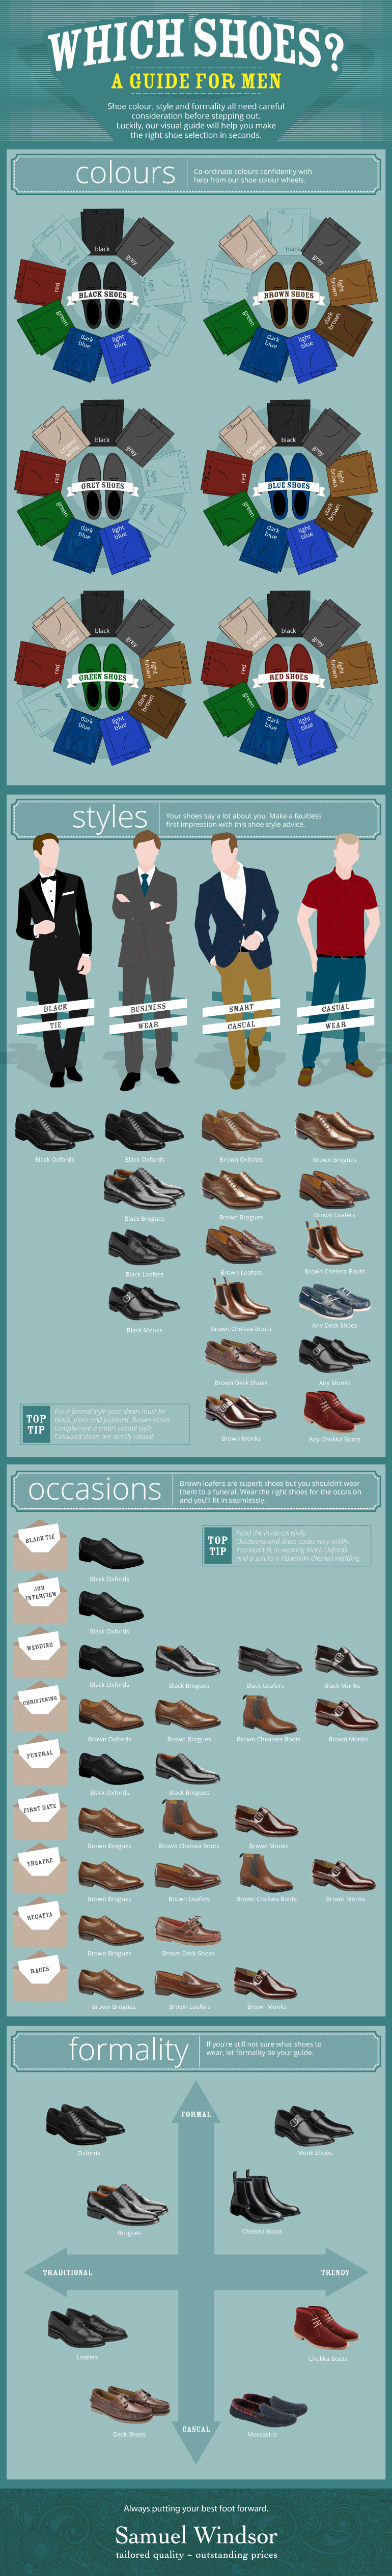 Which Shoes? A Guide For Men